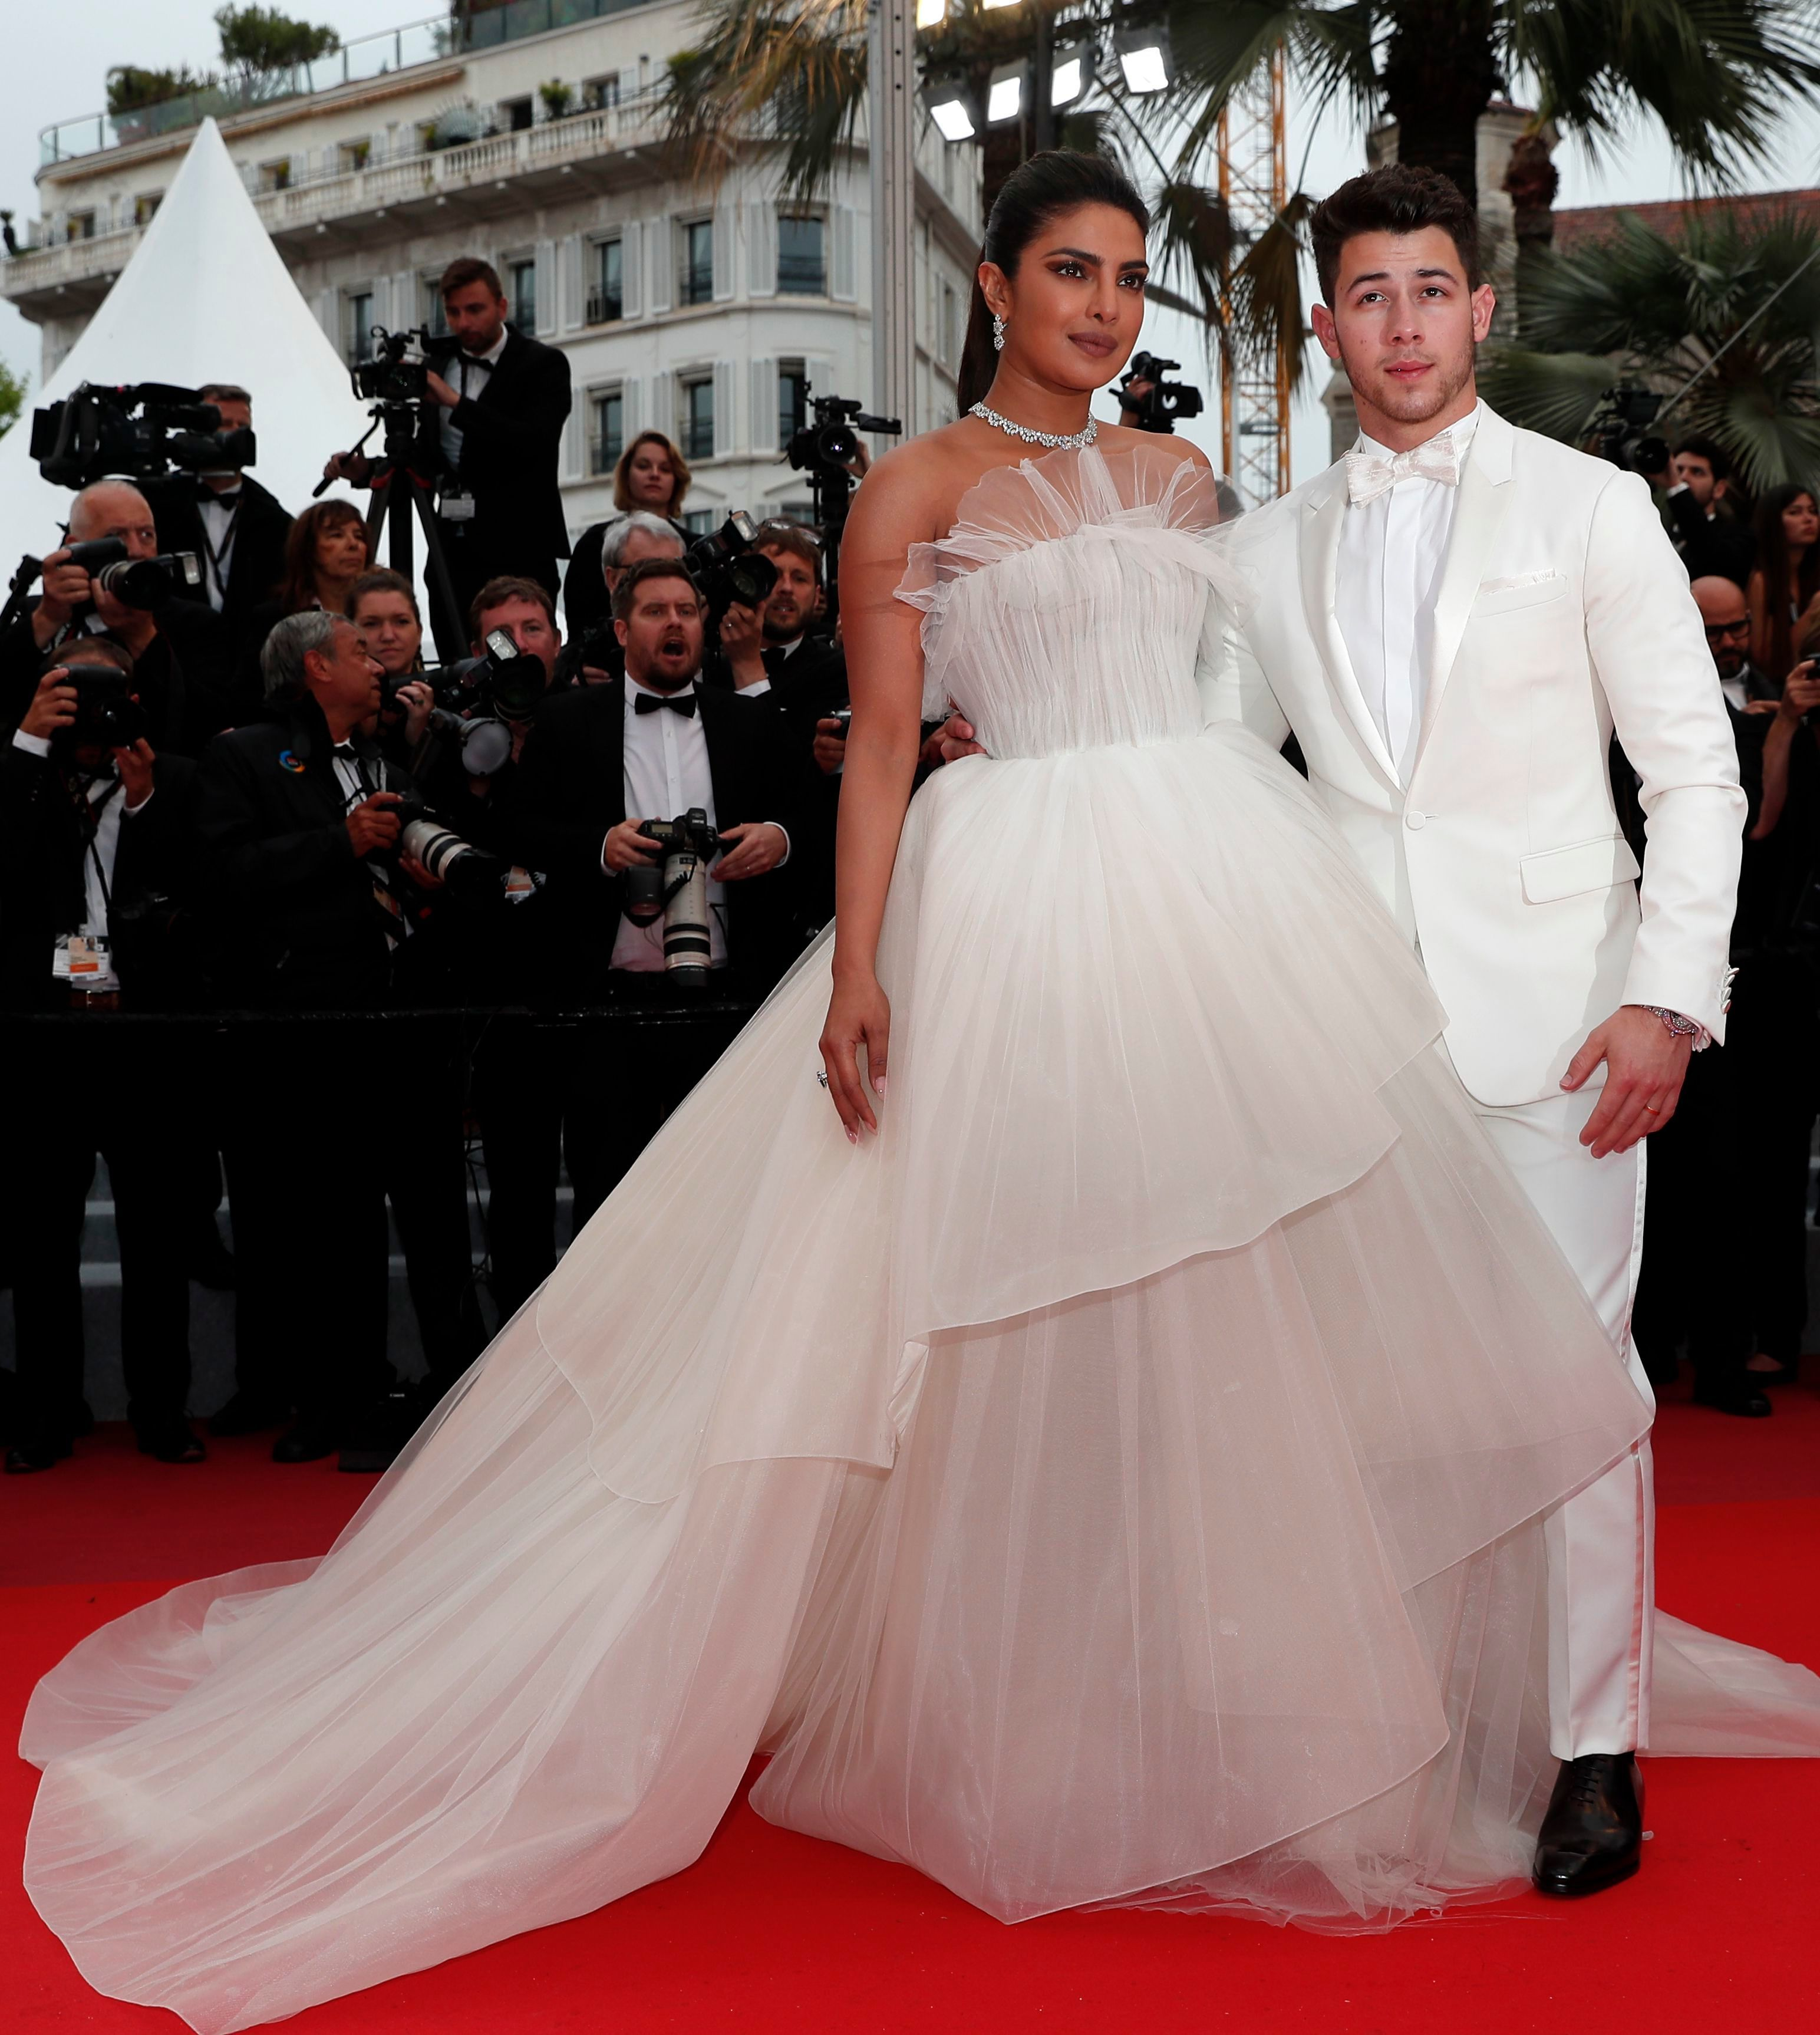 2019 Cannes Film Festival: See all the stars who attended